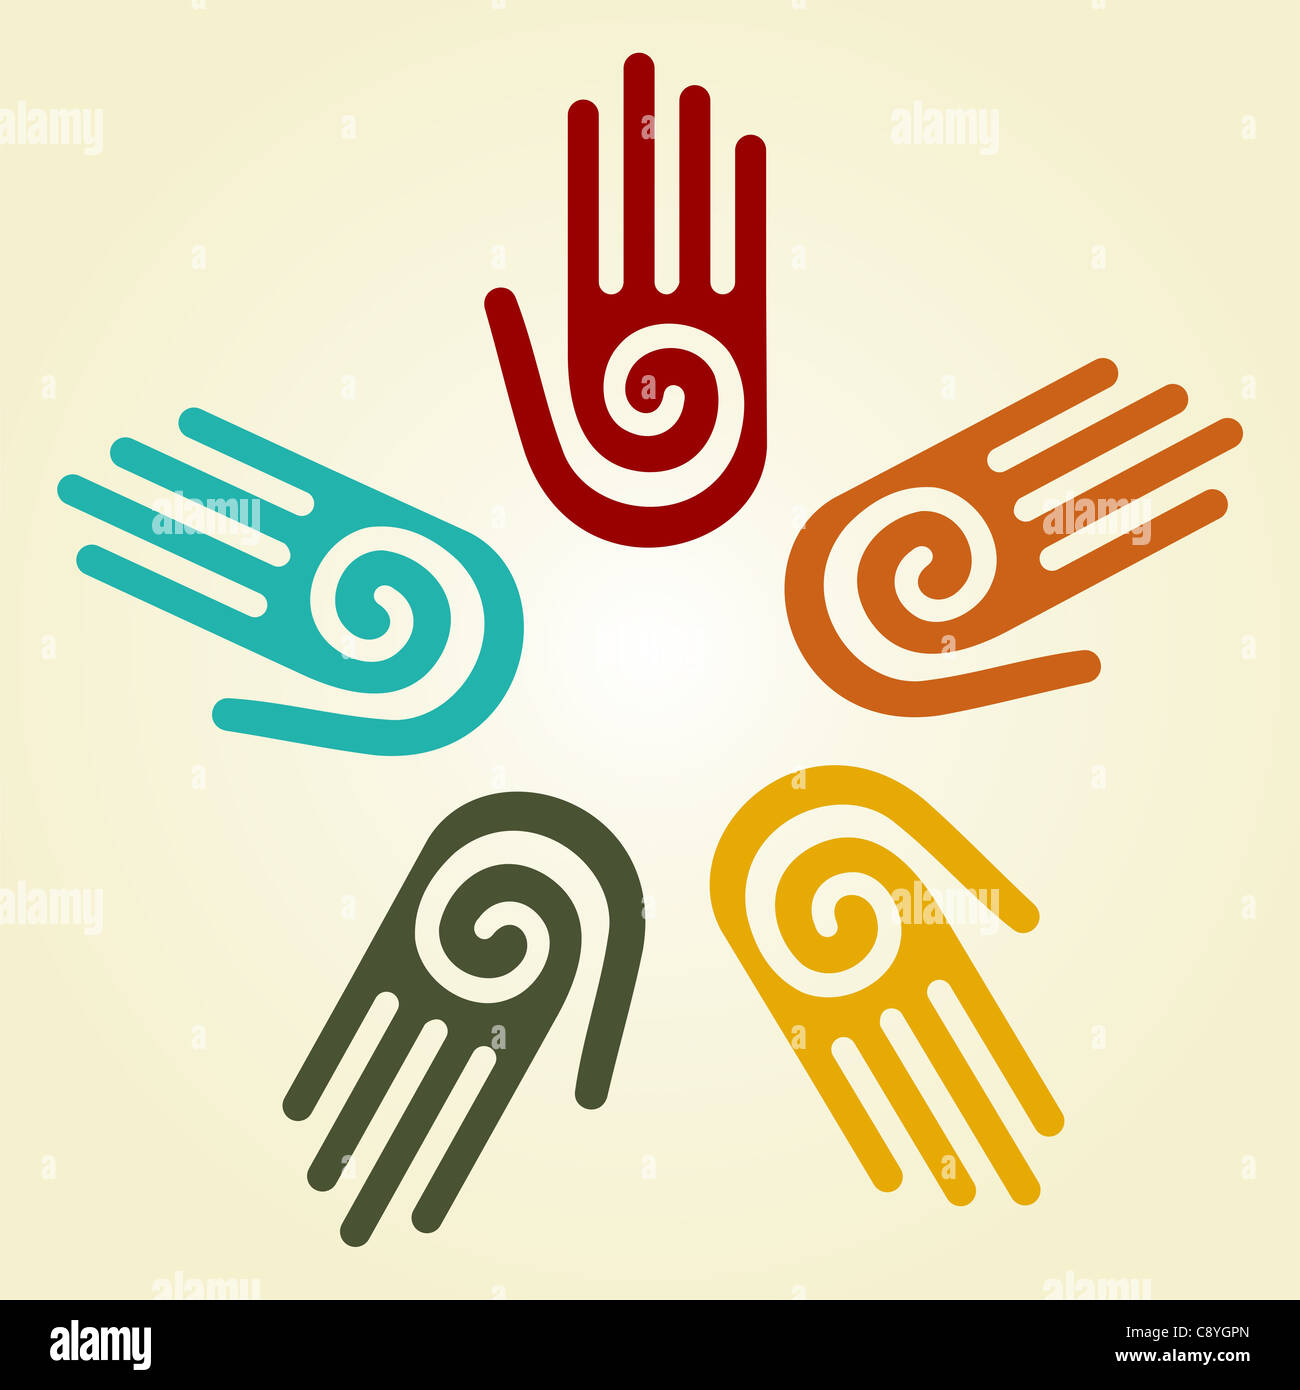 Hand With A Spiral Symbol On The Palm On A Circle Of Hands Stock